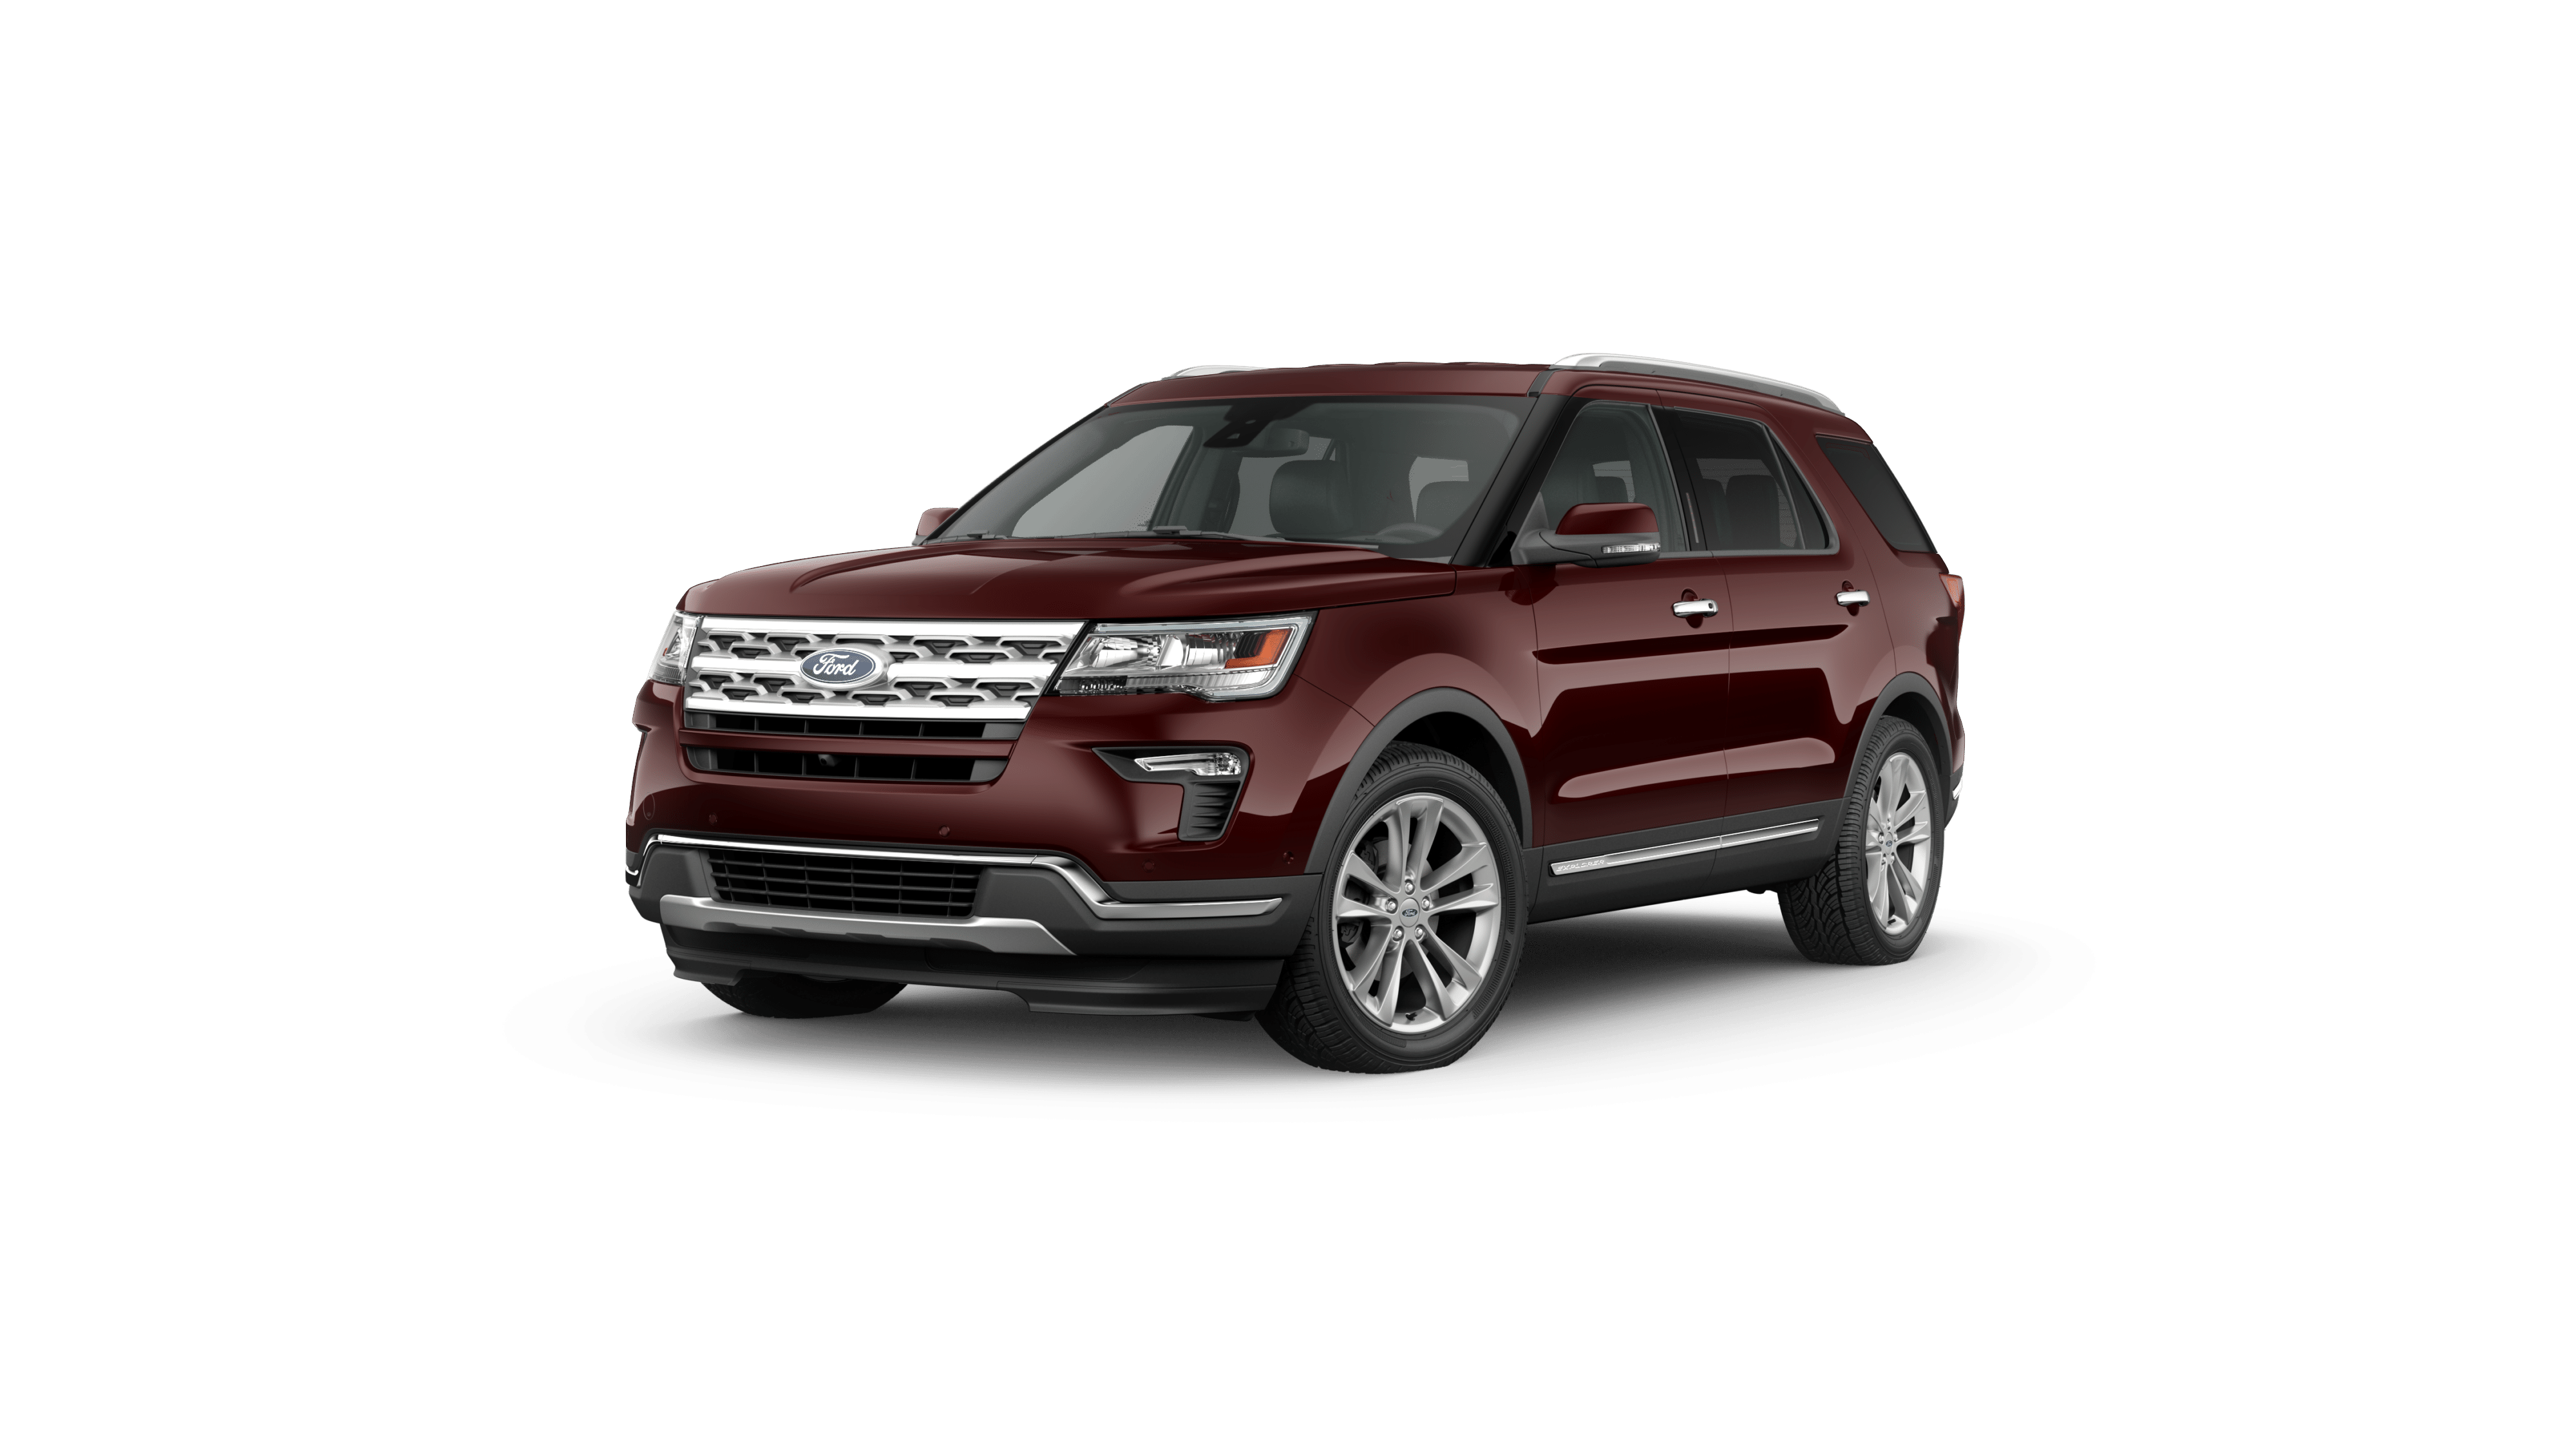 Ciocca Ford Quakertown >> New 2018 Ford Explorer Limited 4WD For Sale in Quakertown ...